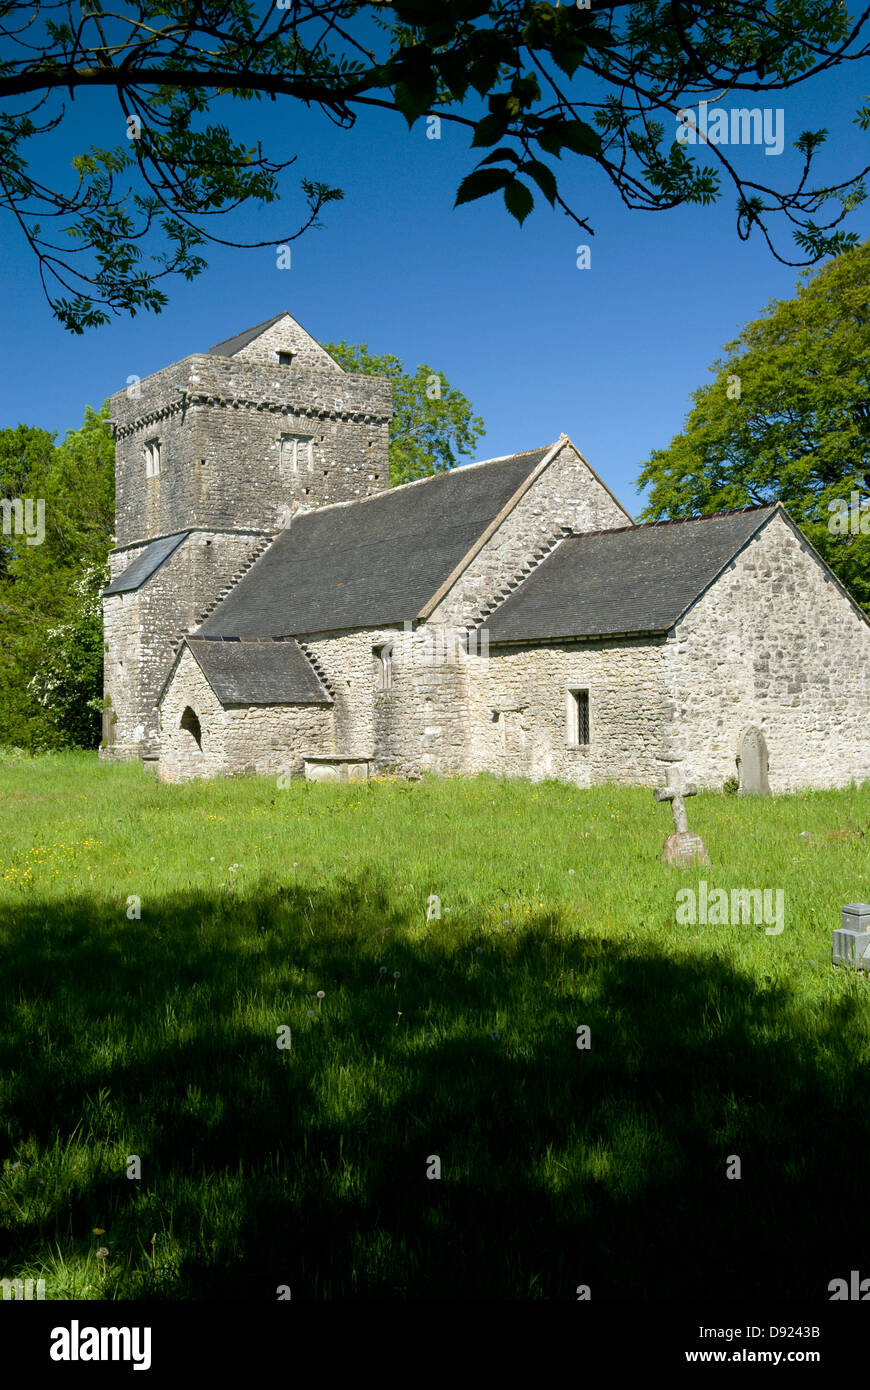 Llanfrynach Church, Cowbridge, Vale of Glamorgan, South Wales, UK. Stock Photo